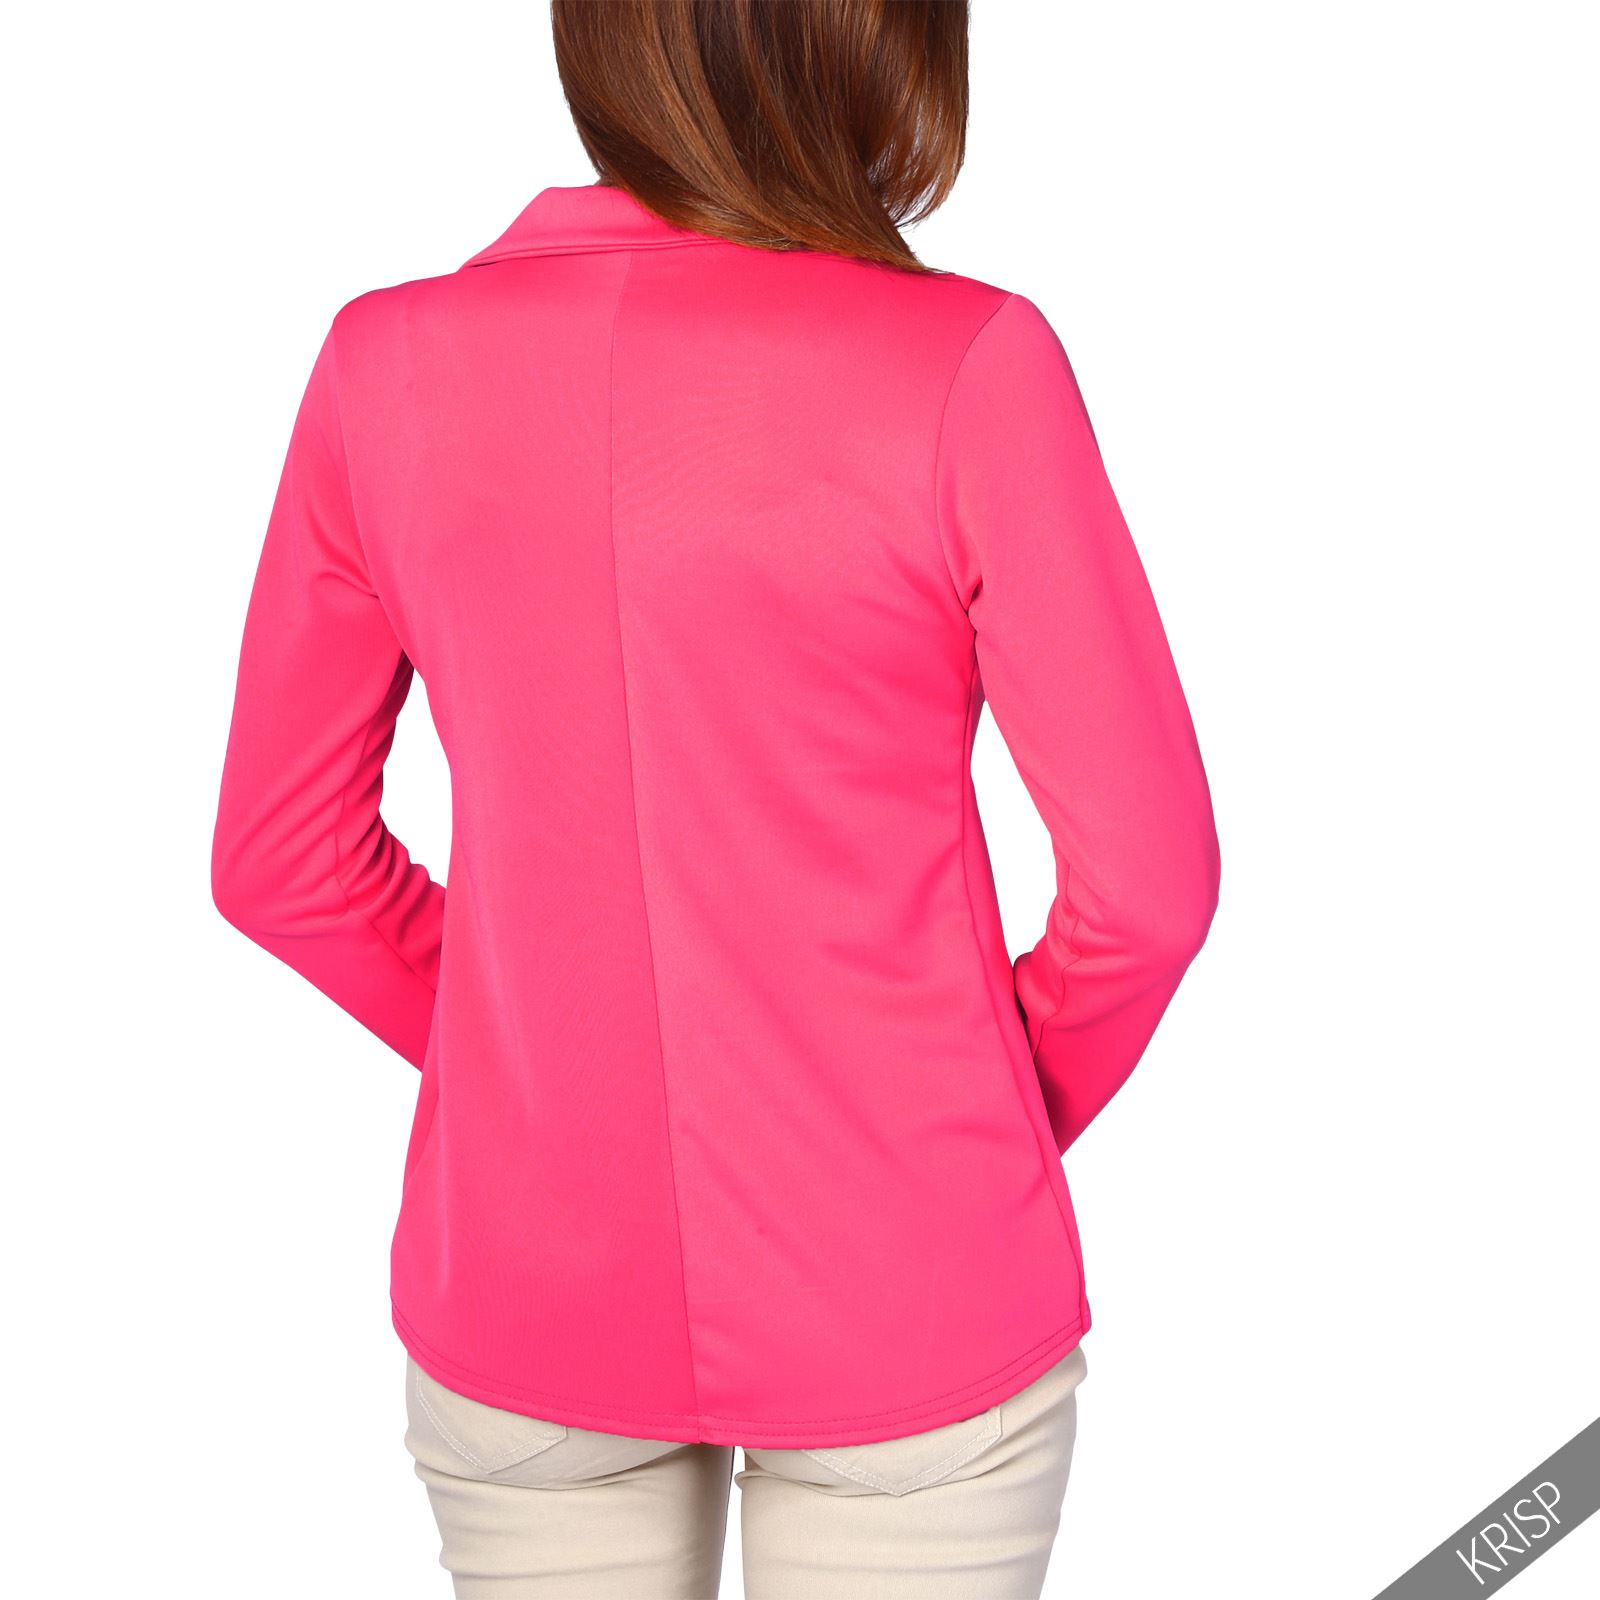 Womens-Jacket-Shrug-Casual-Blazer-Jersey-Smart-Suit-Ladies-Office-Evening-Coat thumbnail 7